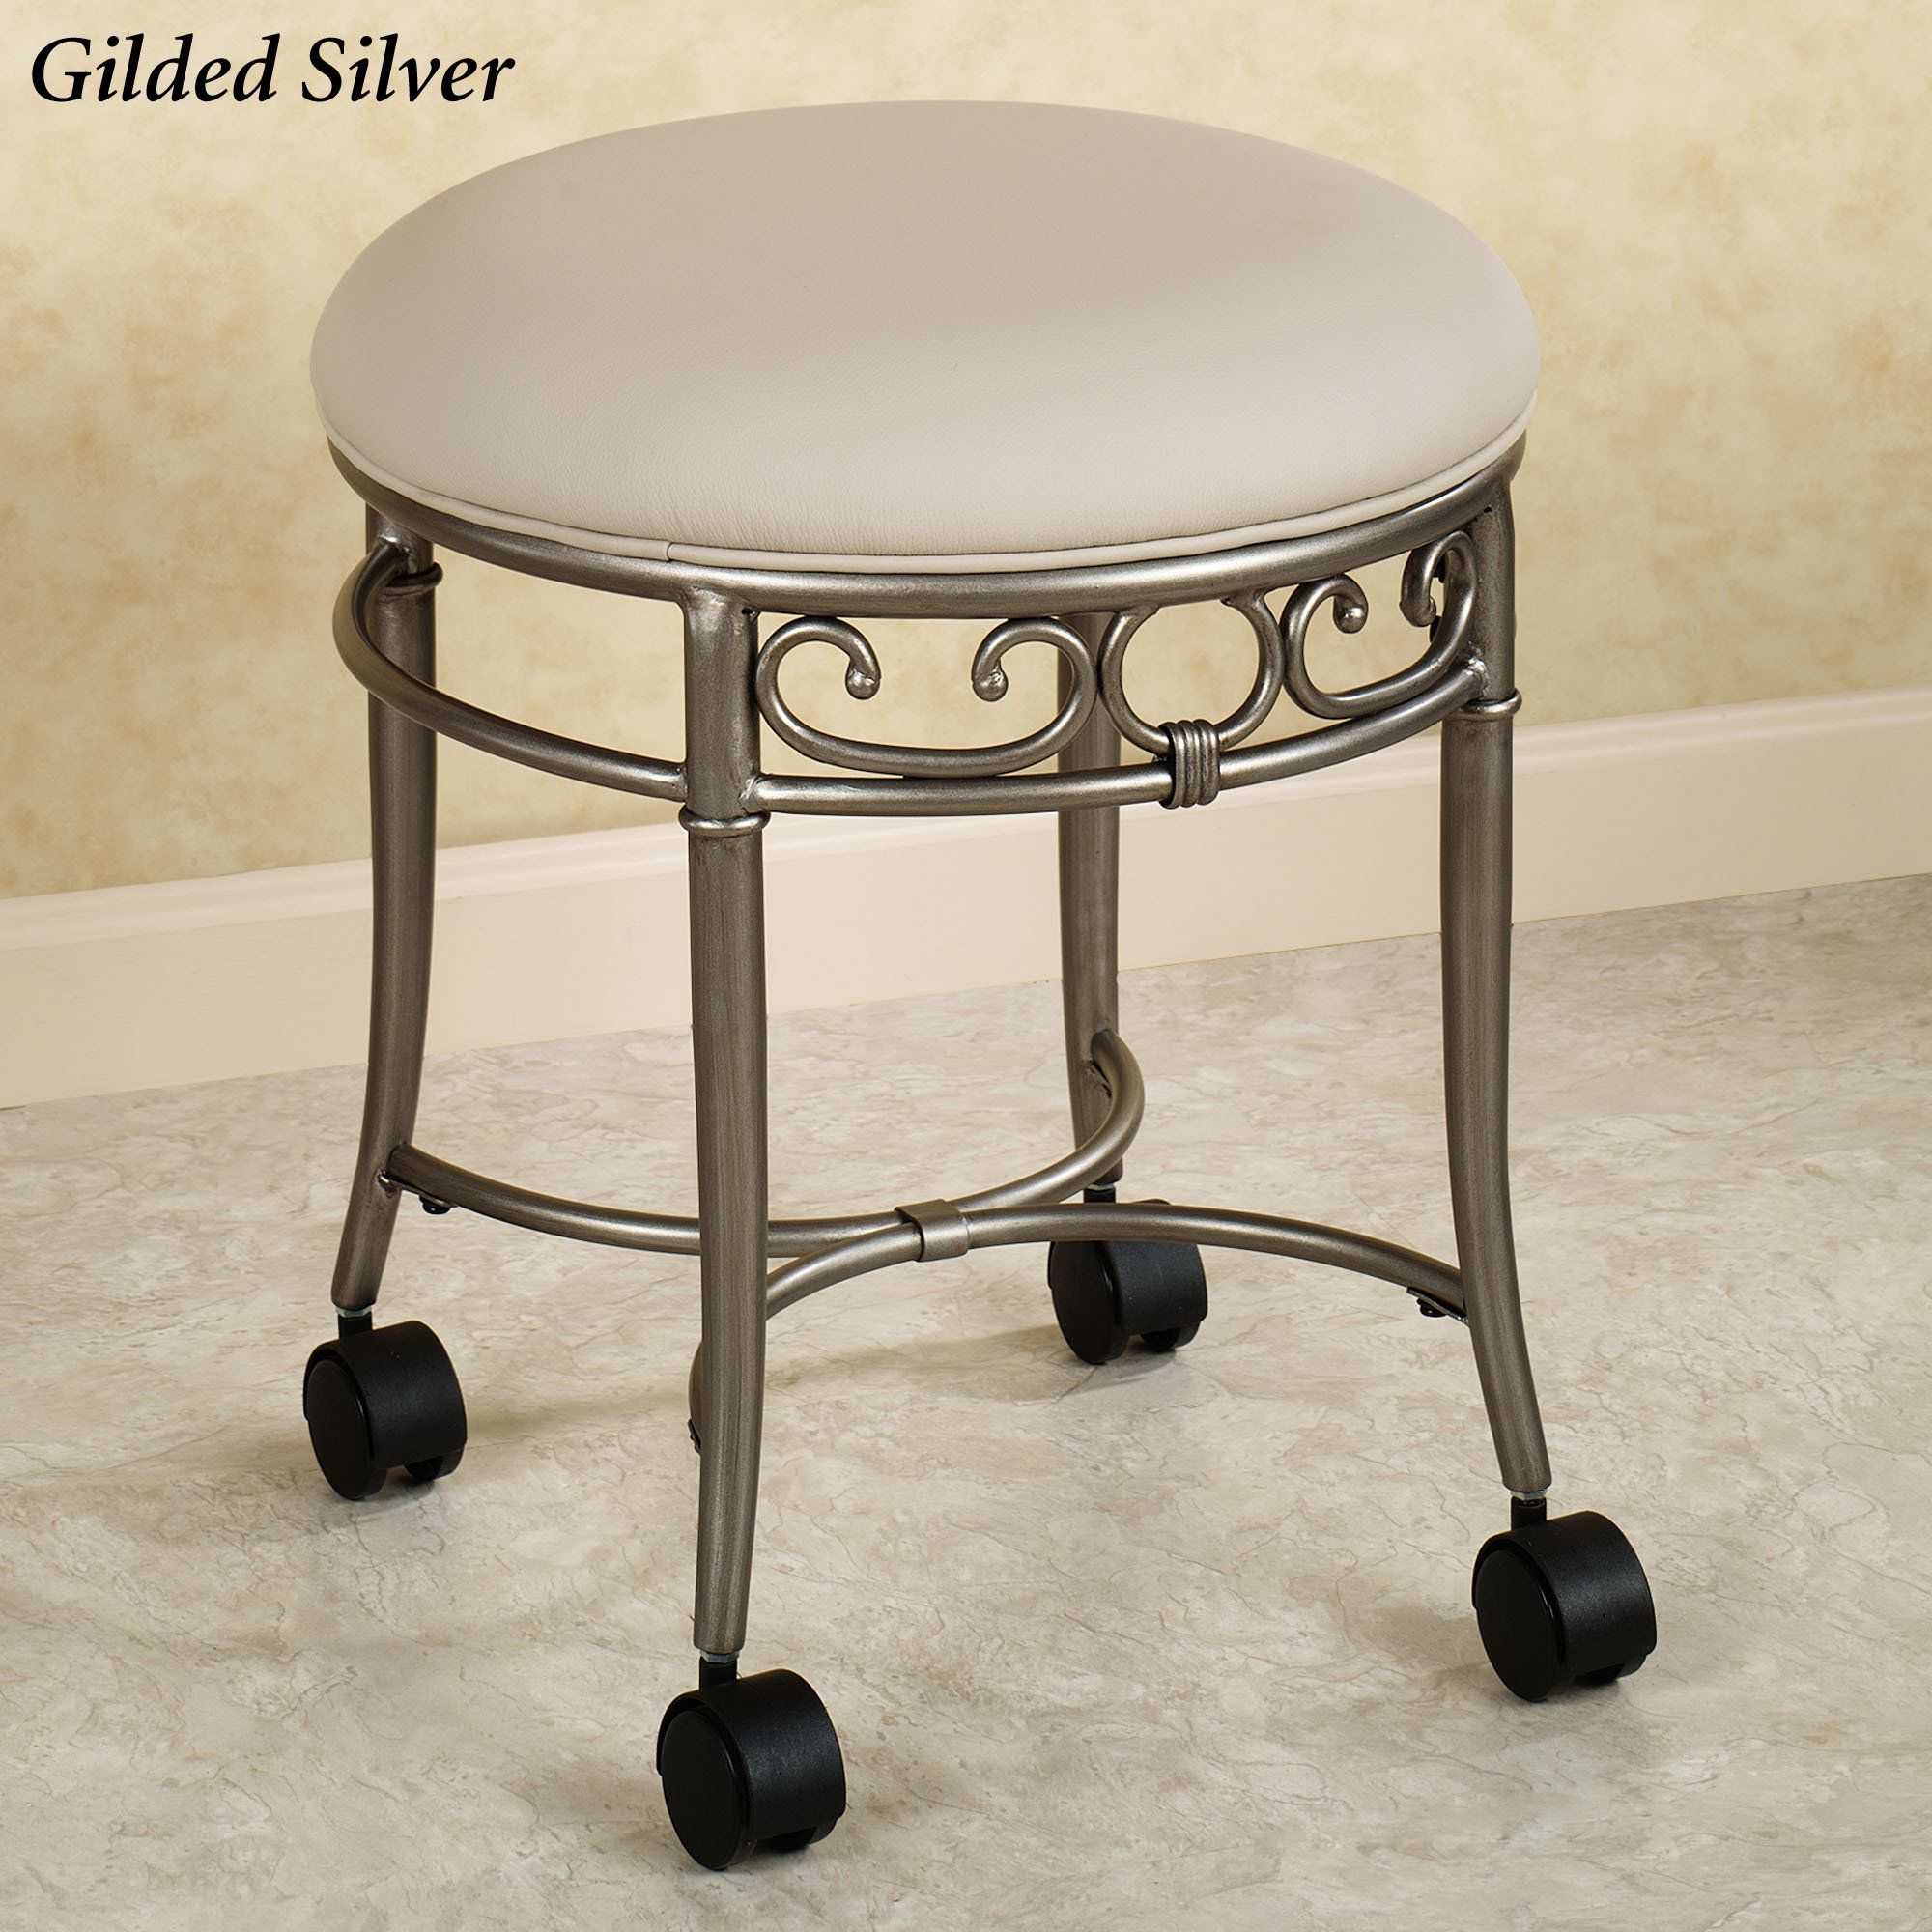 Mcclare Vanity Stool Vanity Stool Bathroom Vanity Stool Stool With Wheels